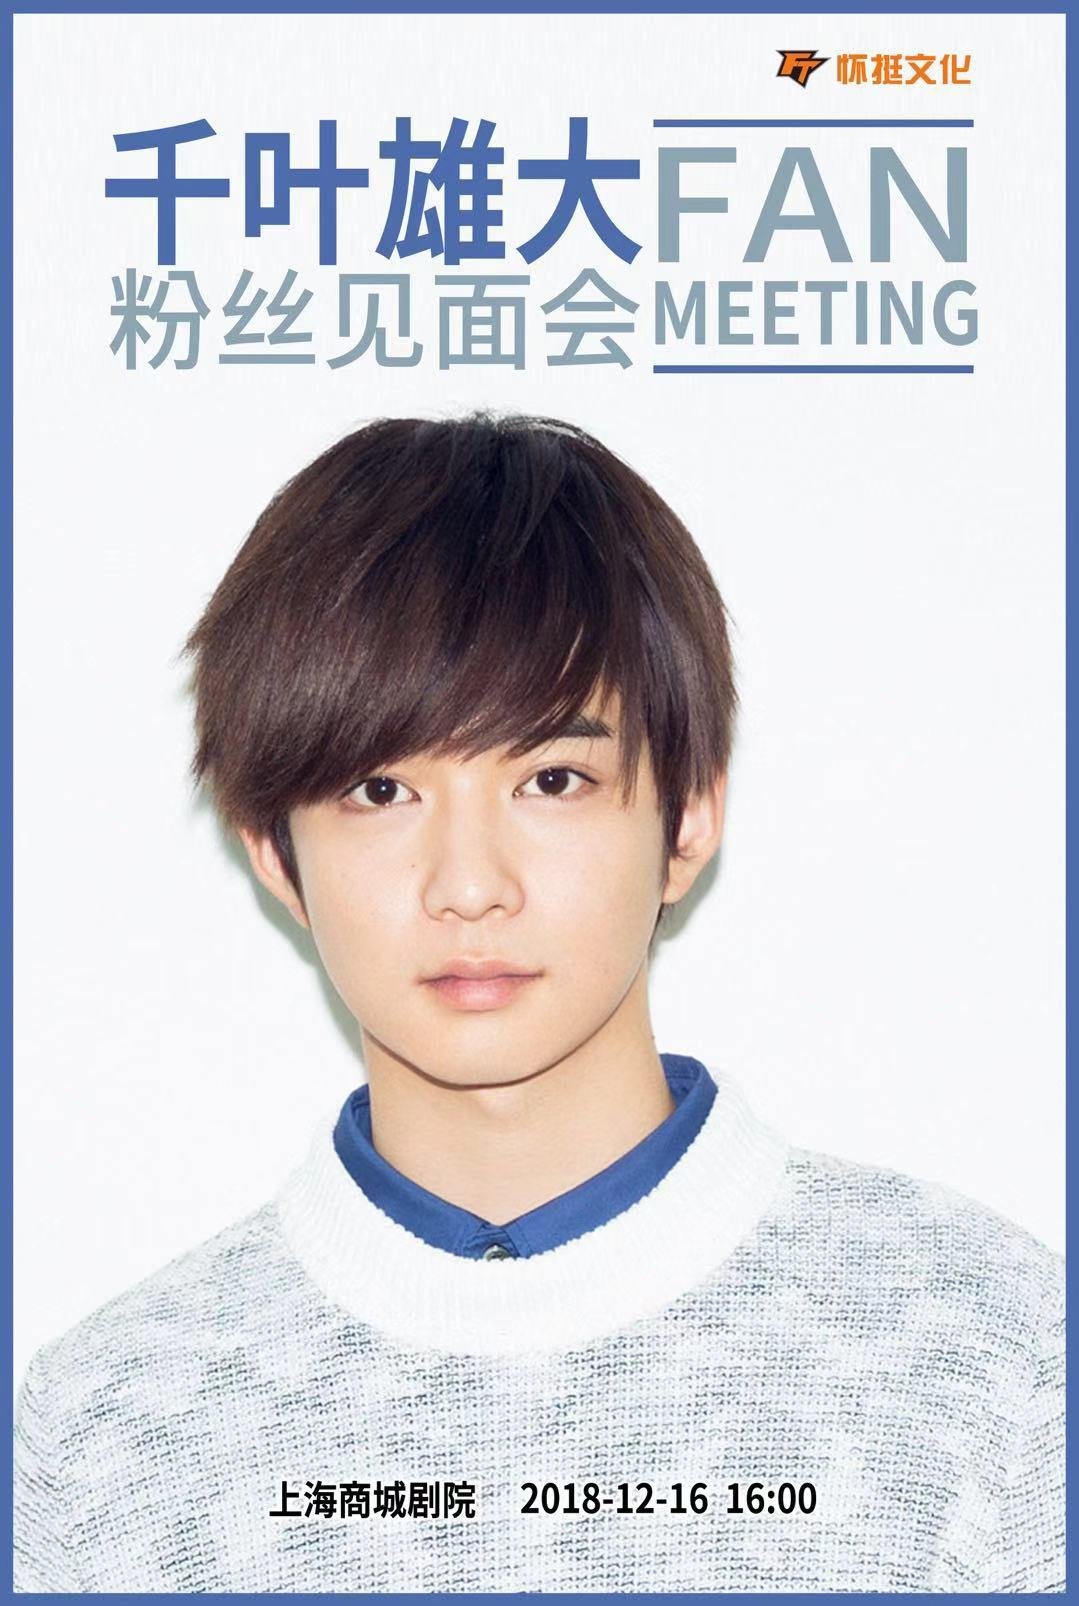 Chiba Yudai (千葉雄大) Fan Meeting in Shanghai